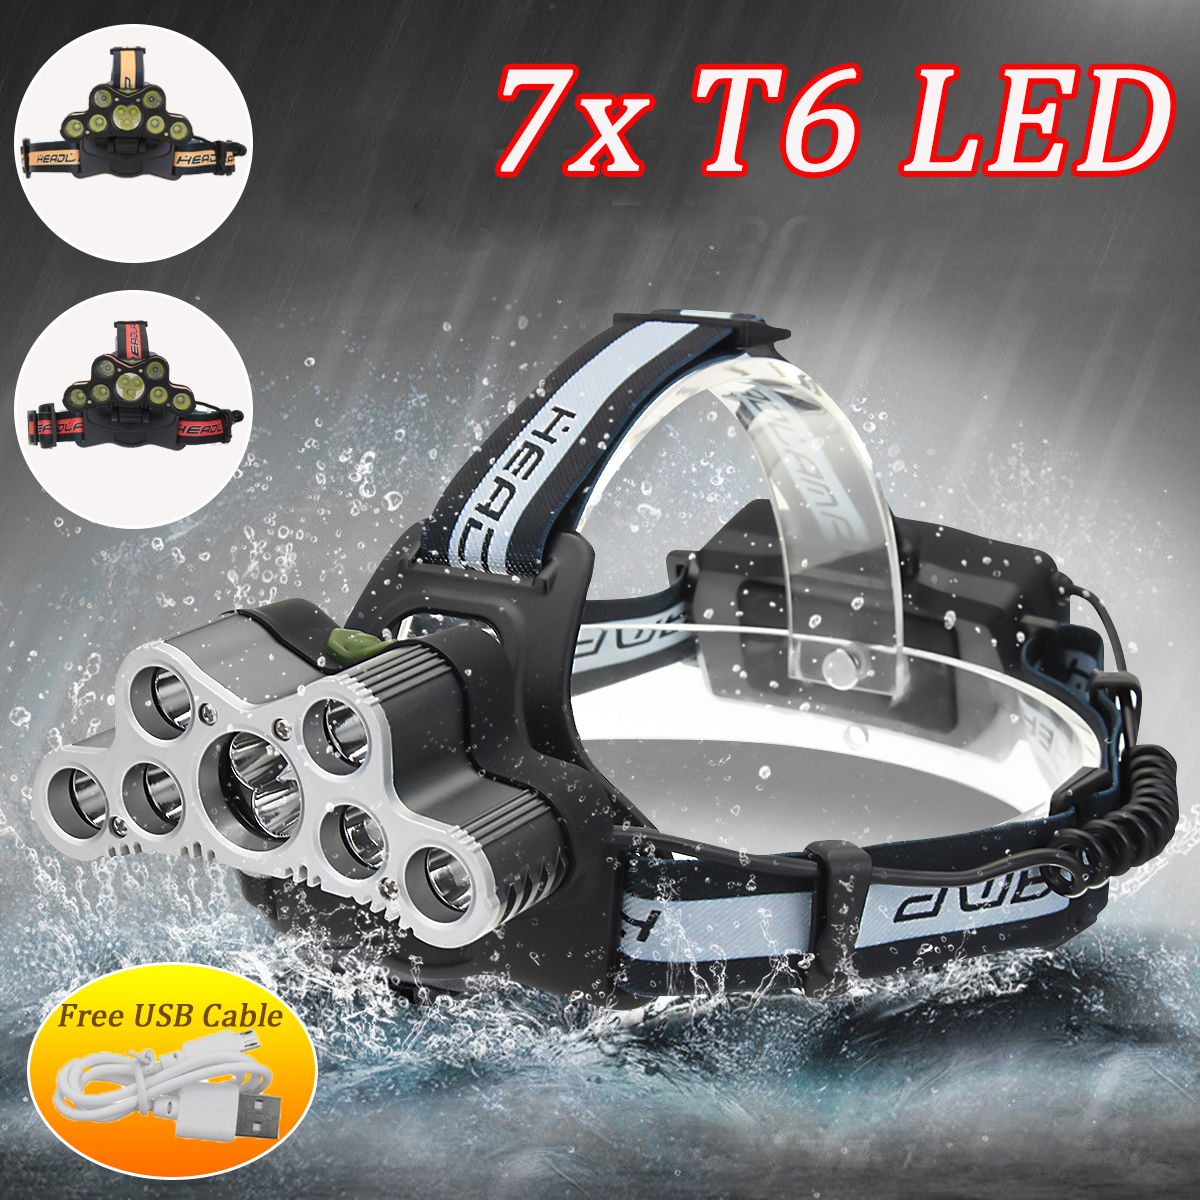 Elfeland 5000Lumens 7xT6 LED USB Rechargeable Headlight Headlamp Torch with SOS Help Whistle 6 Modes + USB Cable For Camping Hiking